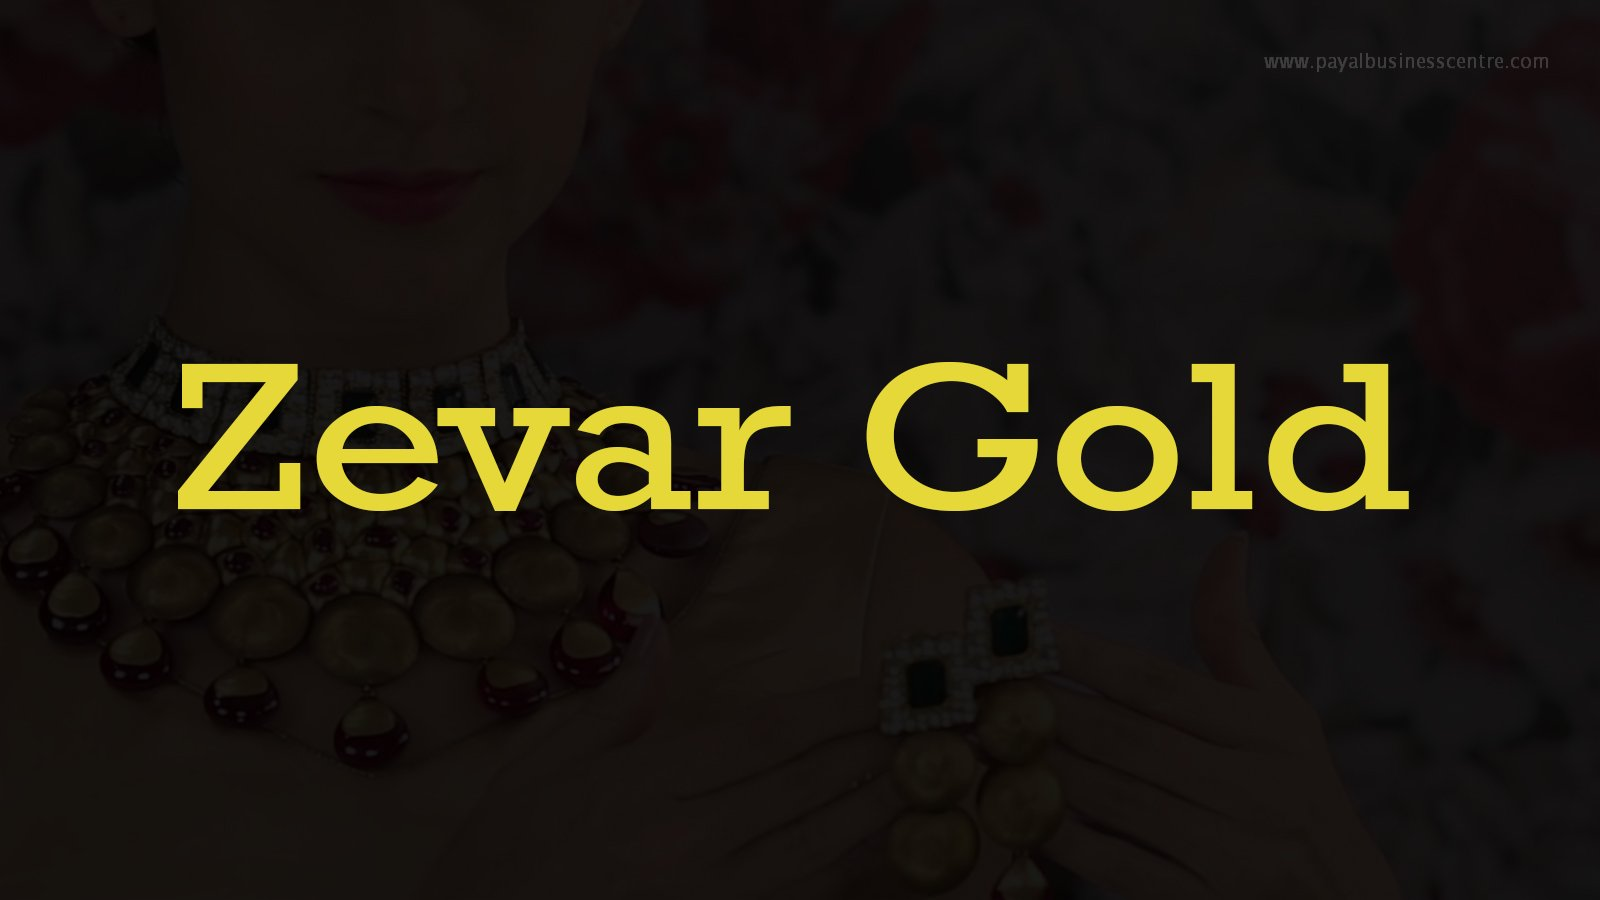 Zevar Gold - Jewelers - 12885 80th Ave